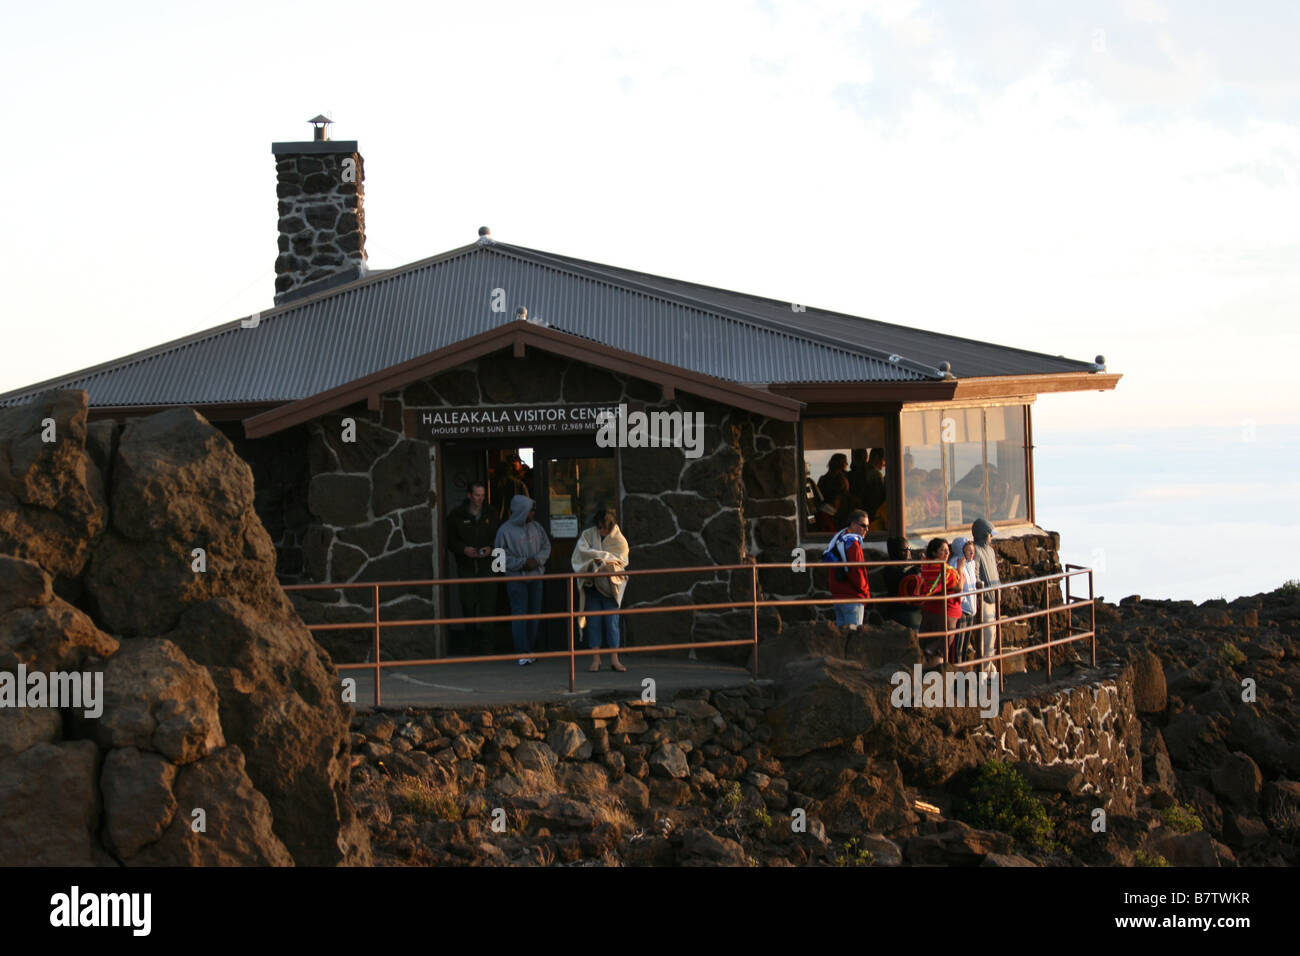 volcano house hawaii stockfotos volcano house hawaii bilder alamy. Black Bedroom Furniture Sets. Home Design Ideas